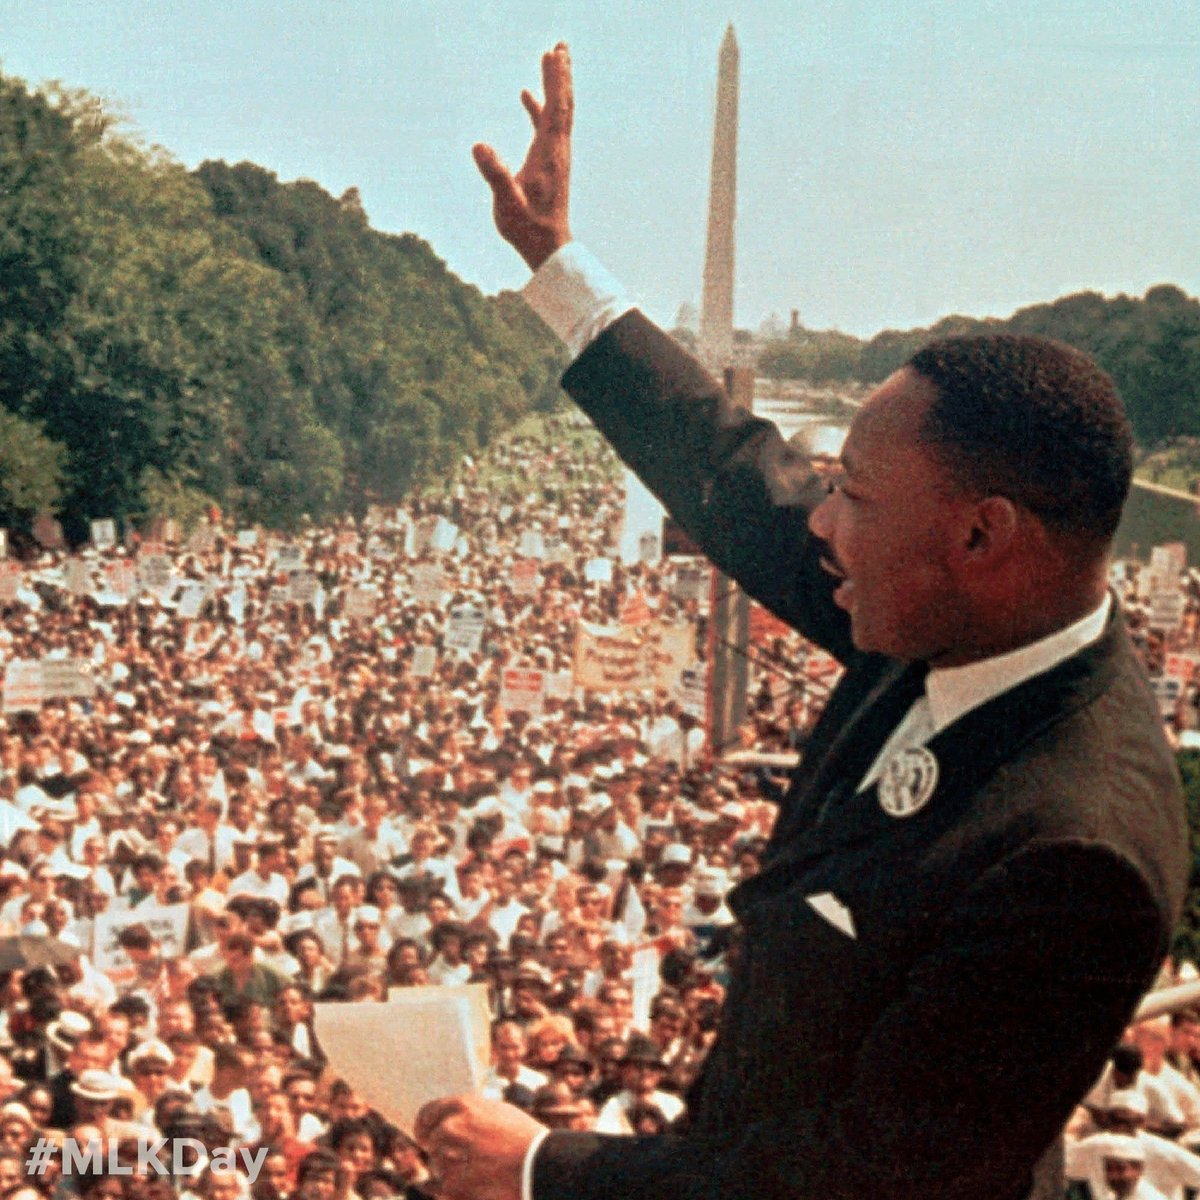 """Today, the men and women of the @NRA honor the profound life and legacy of Dr. Martin Luther King Jr. Dr. King applied for a concealed carry permit in a """"may issue"""" state and was denied. We will never stop fighting for every law-abiding citizen's right to self-defense. #MLKDay"""